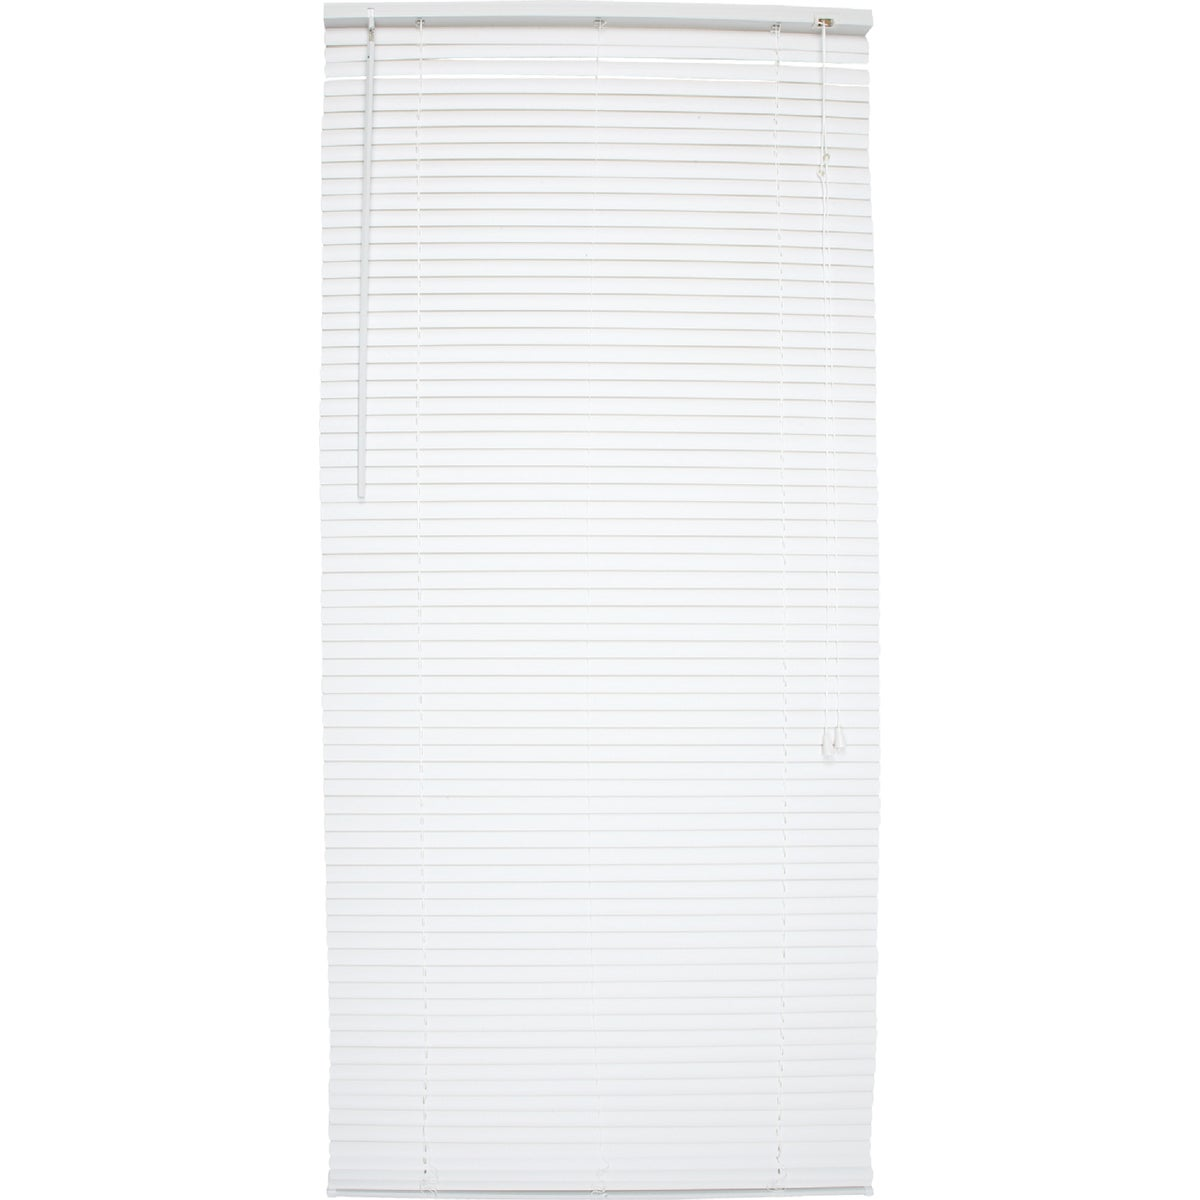 46X64 WHITE MINI BLIND - 615838 by Lotus Wind Incom